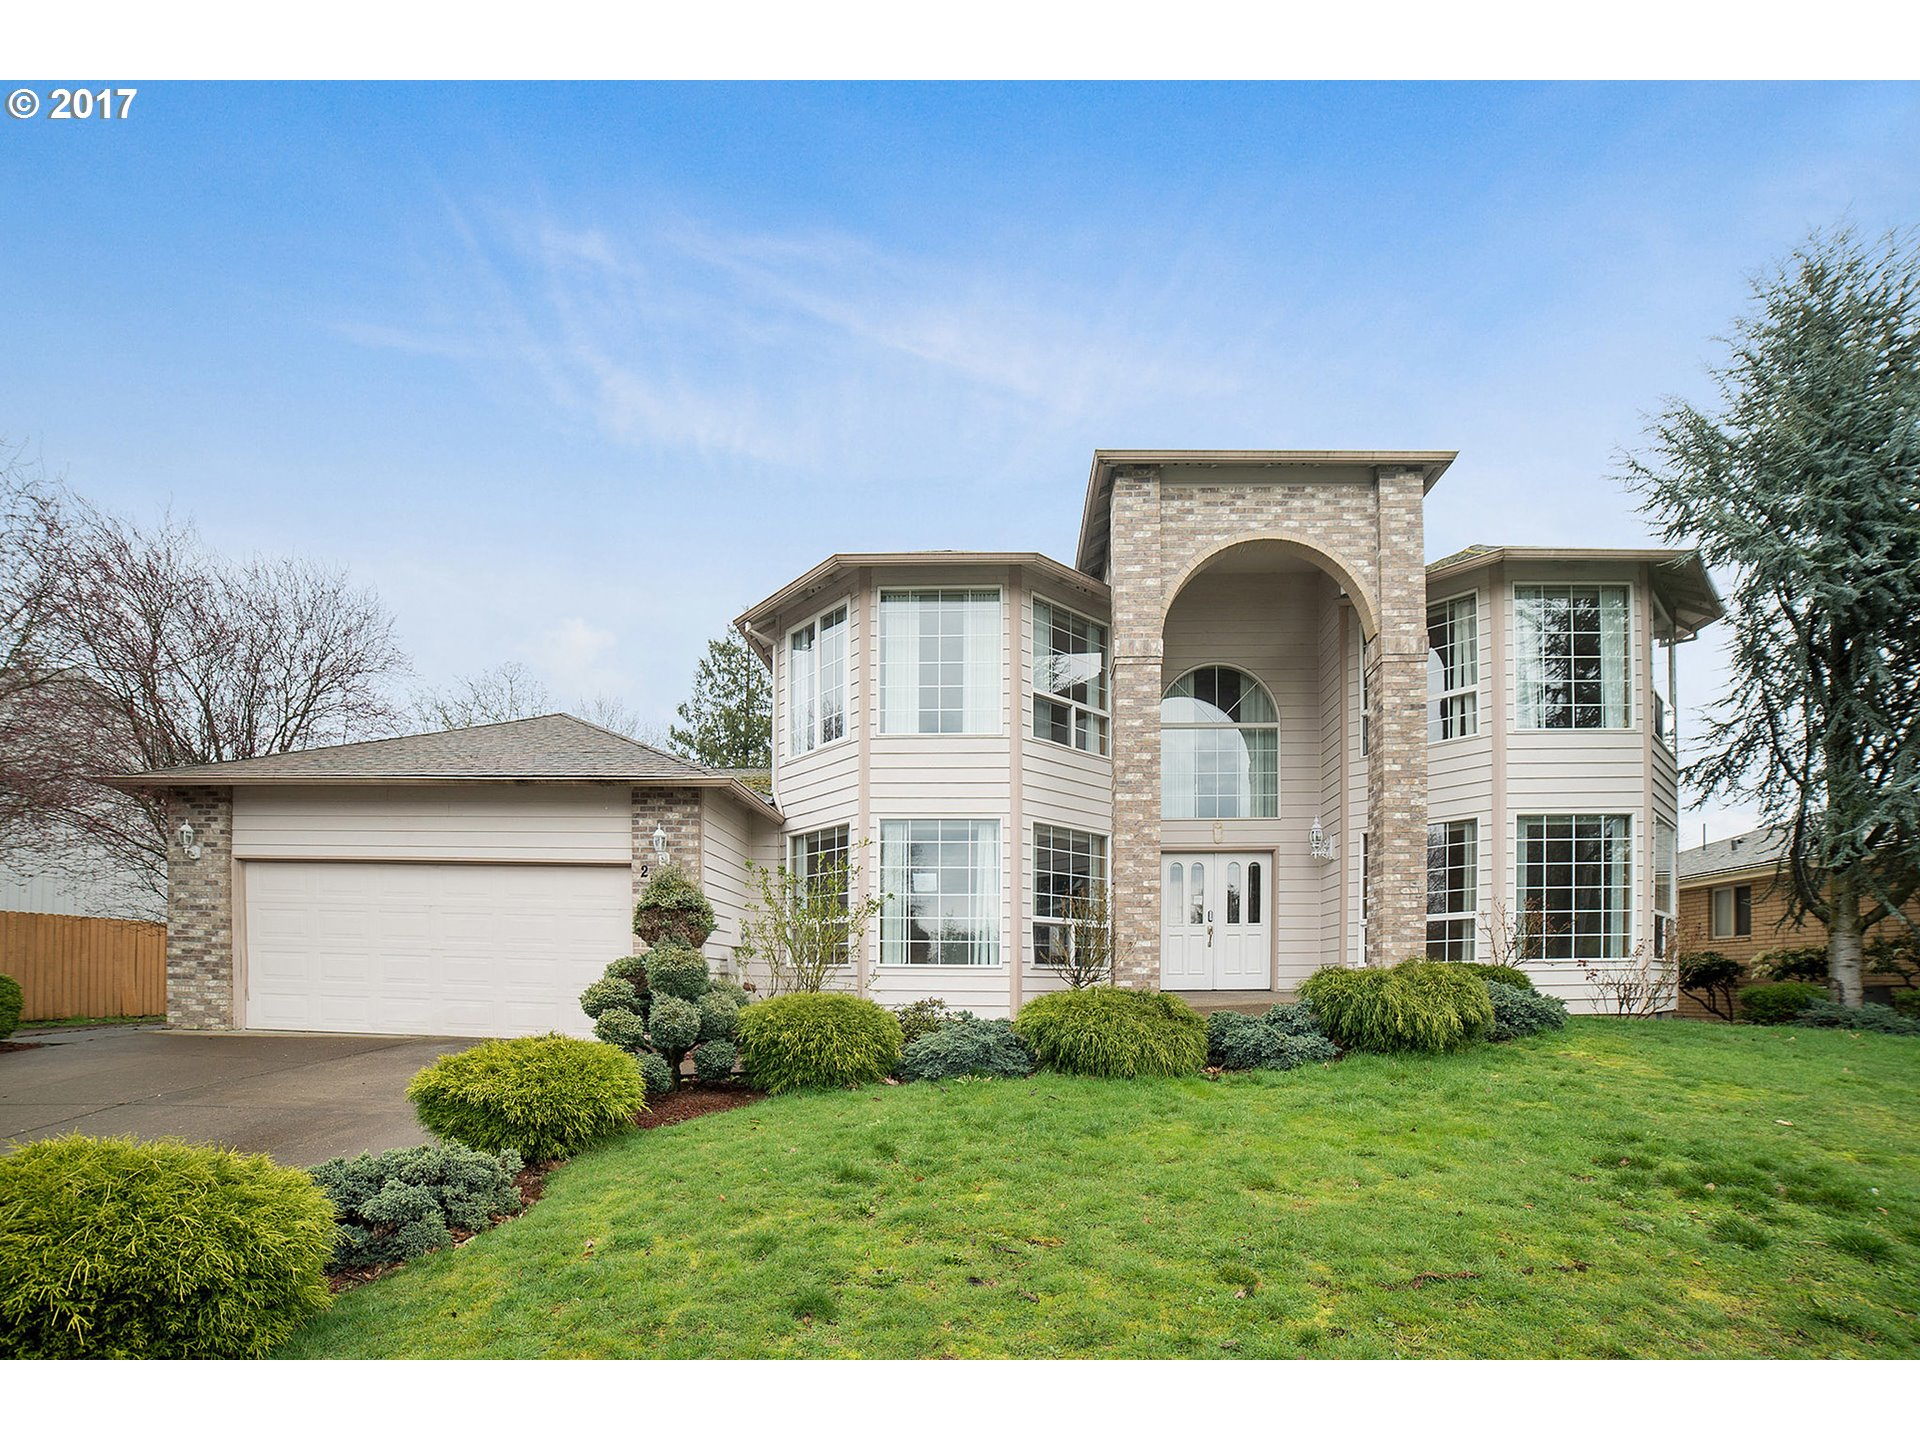 3844 sq. ft 8 bedrooms 3 bathrooms  House ,Portland, OR